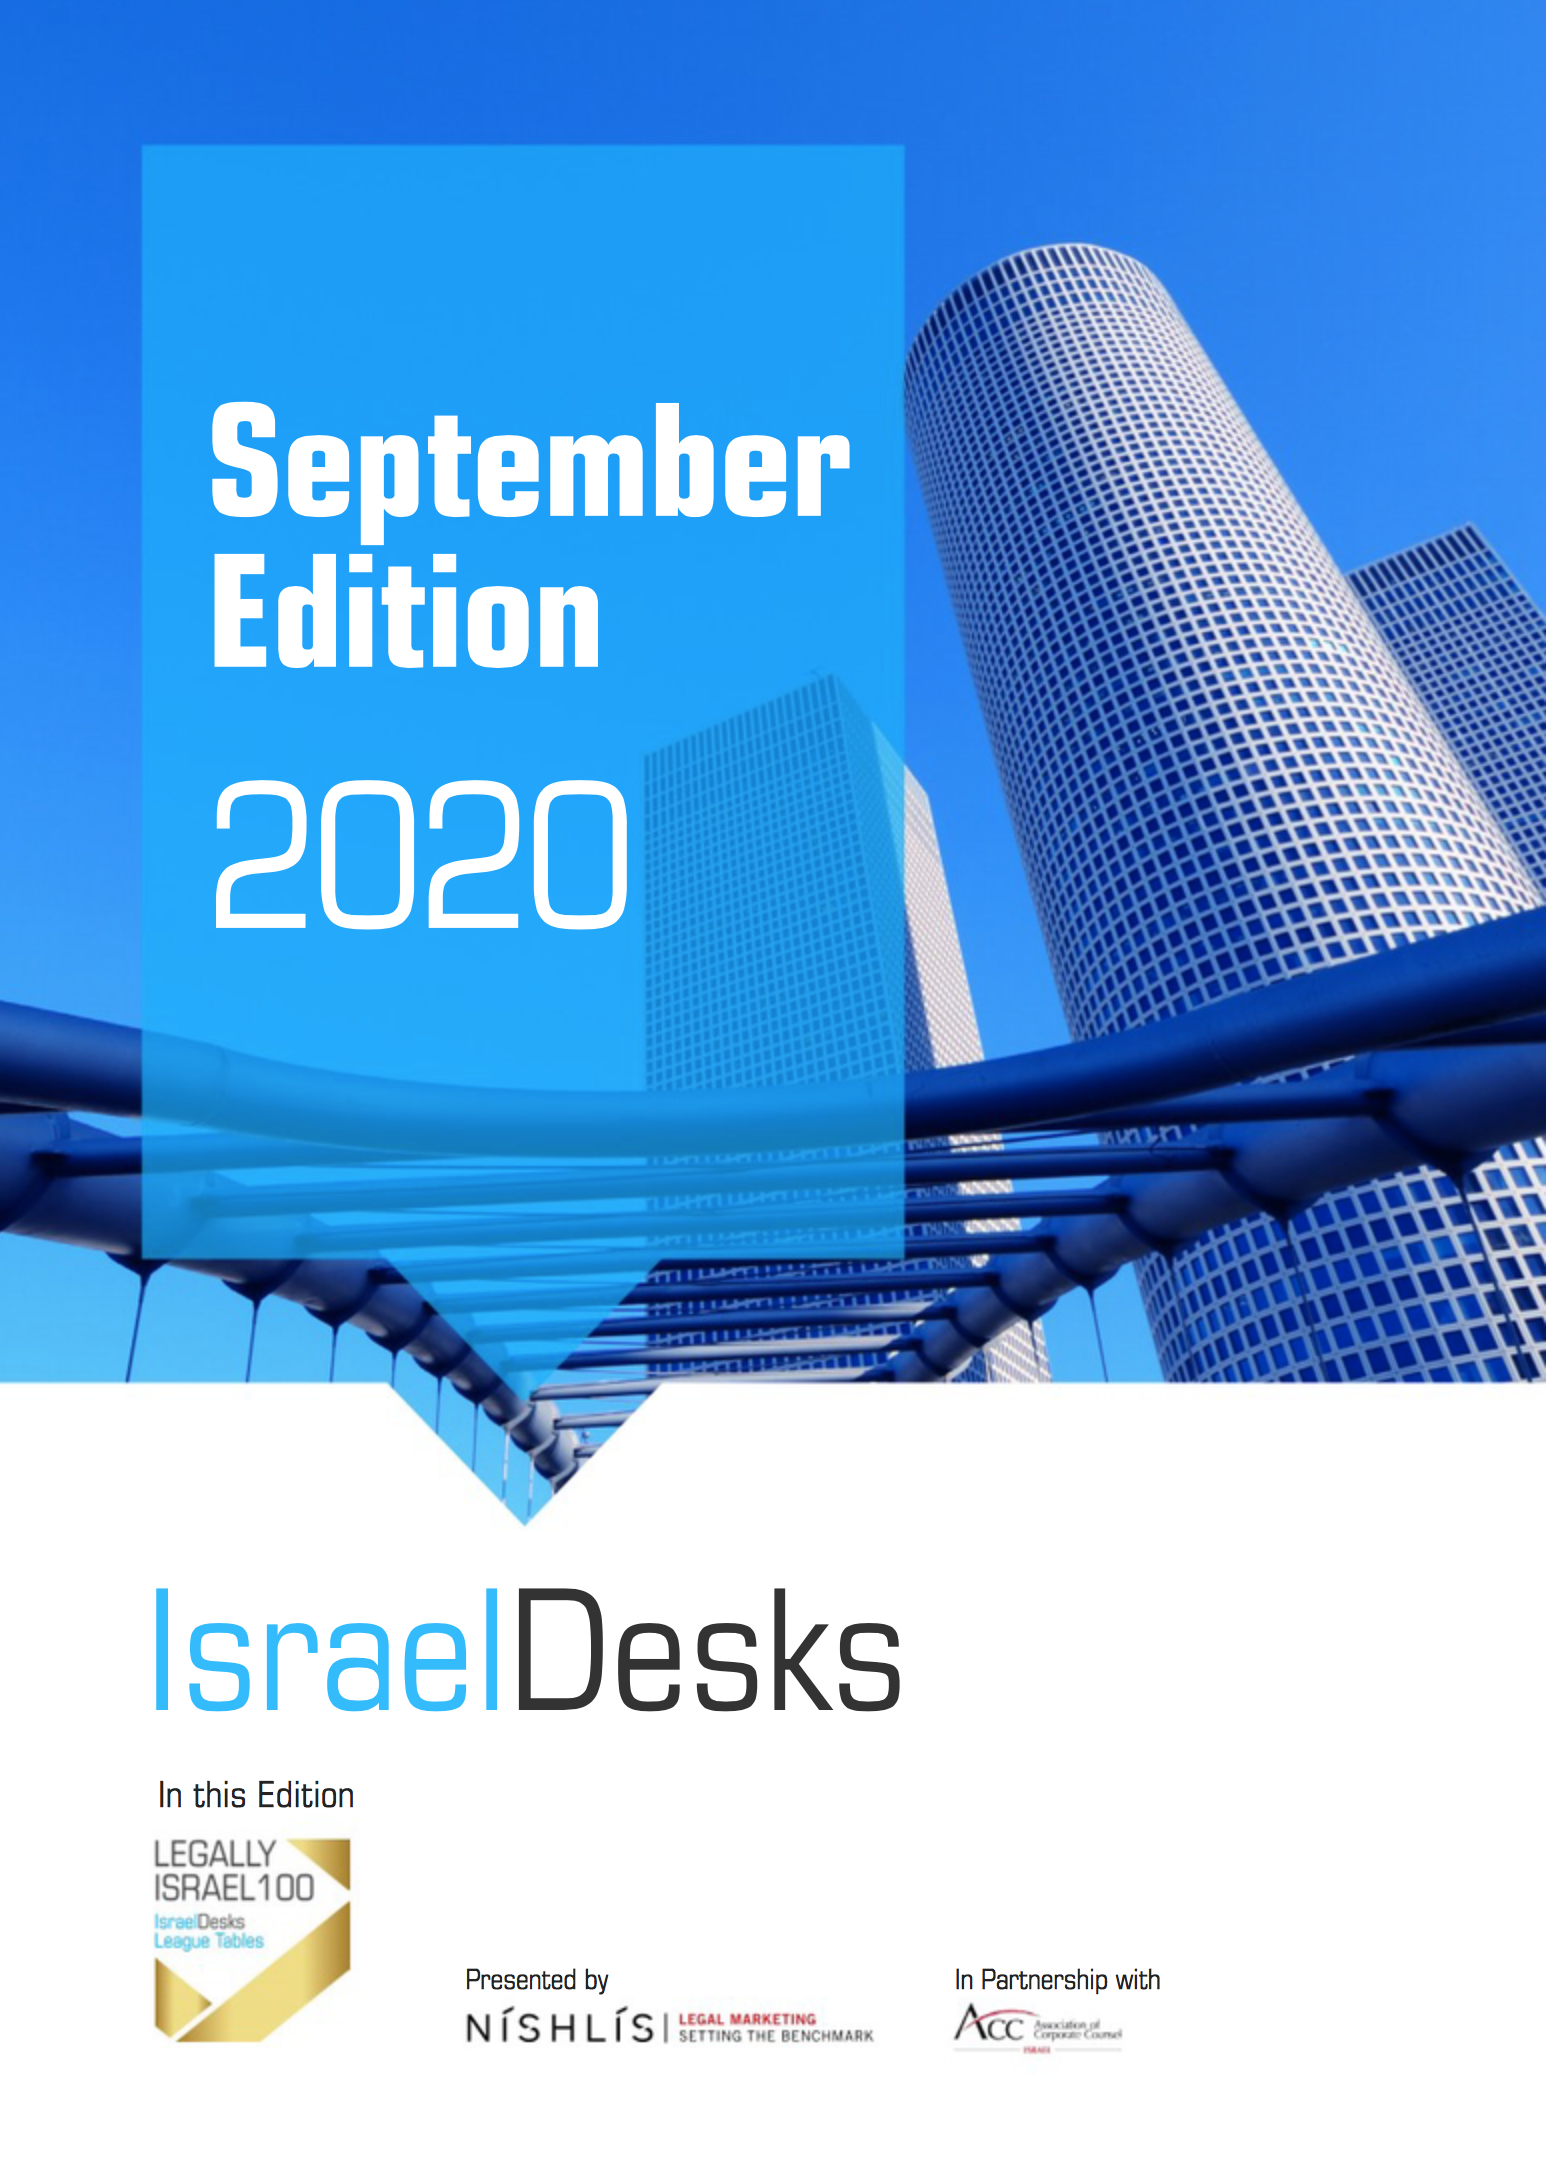 IsraelDesks Magazine September 2020 Legally Israel 100 Special Edition